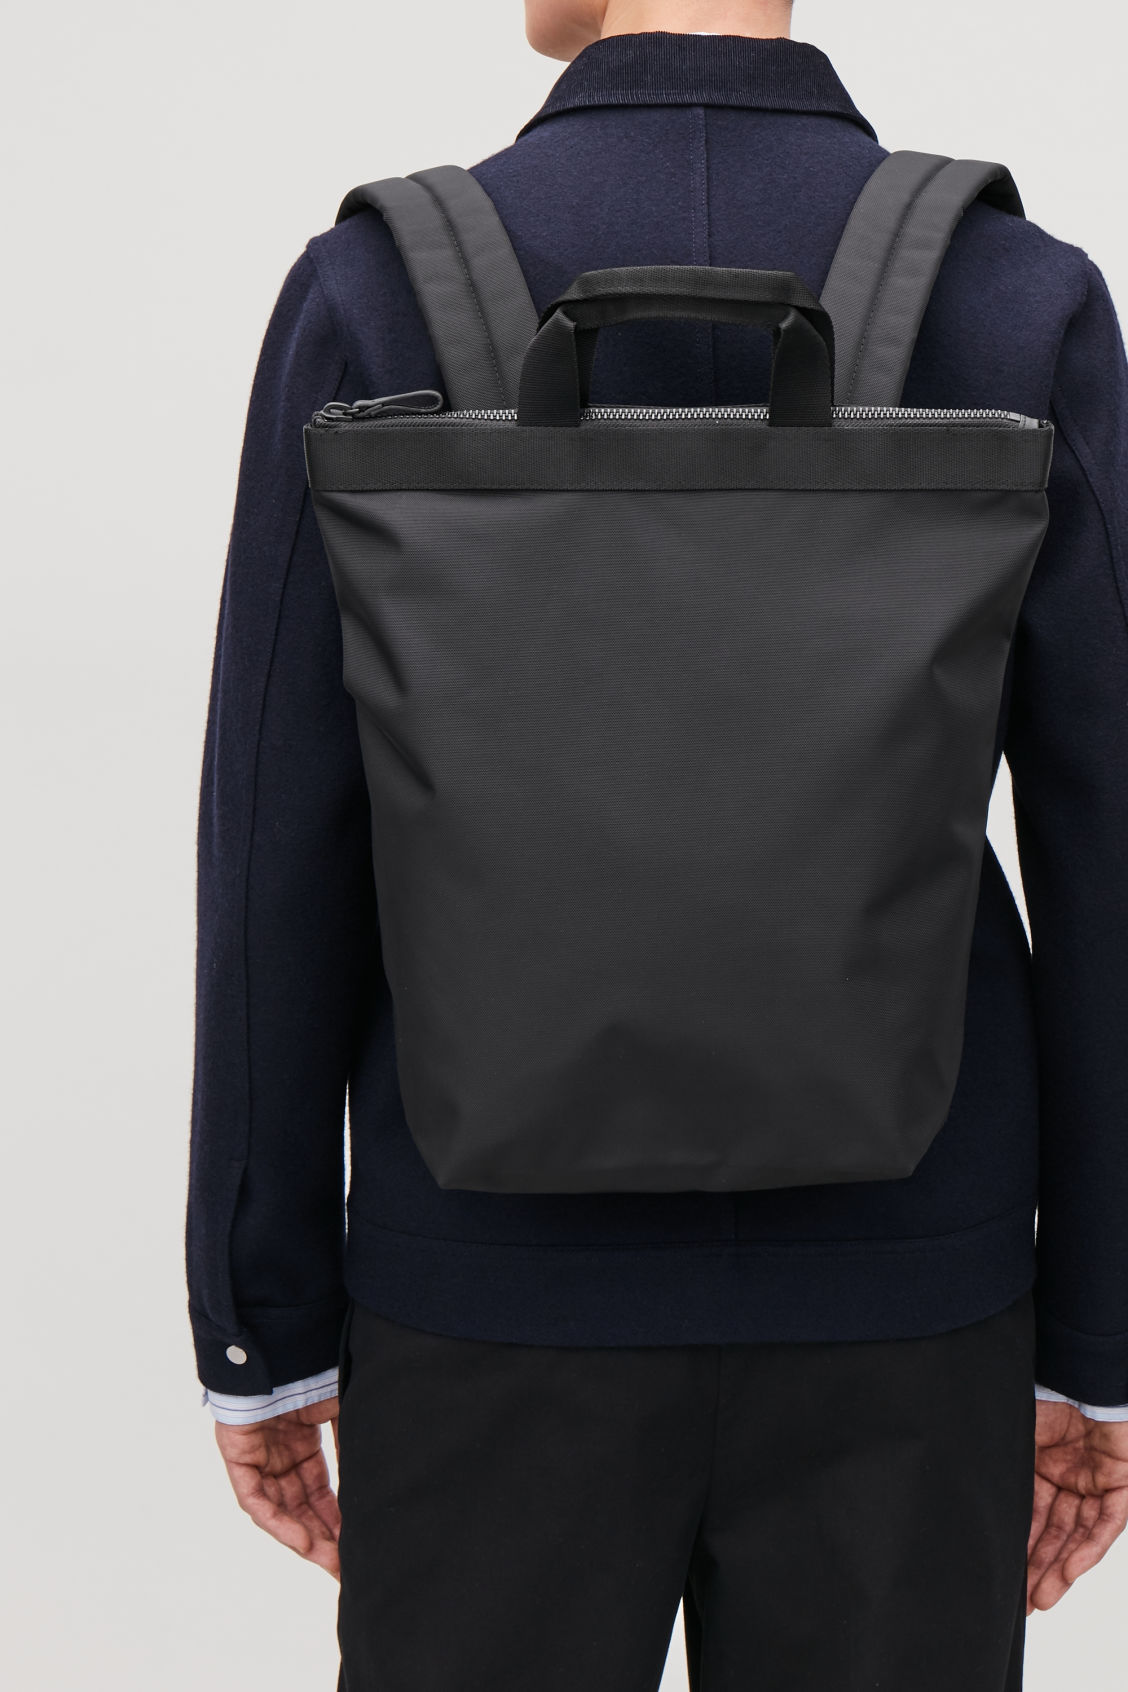 Detailed image of Cos tote backpack in black